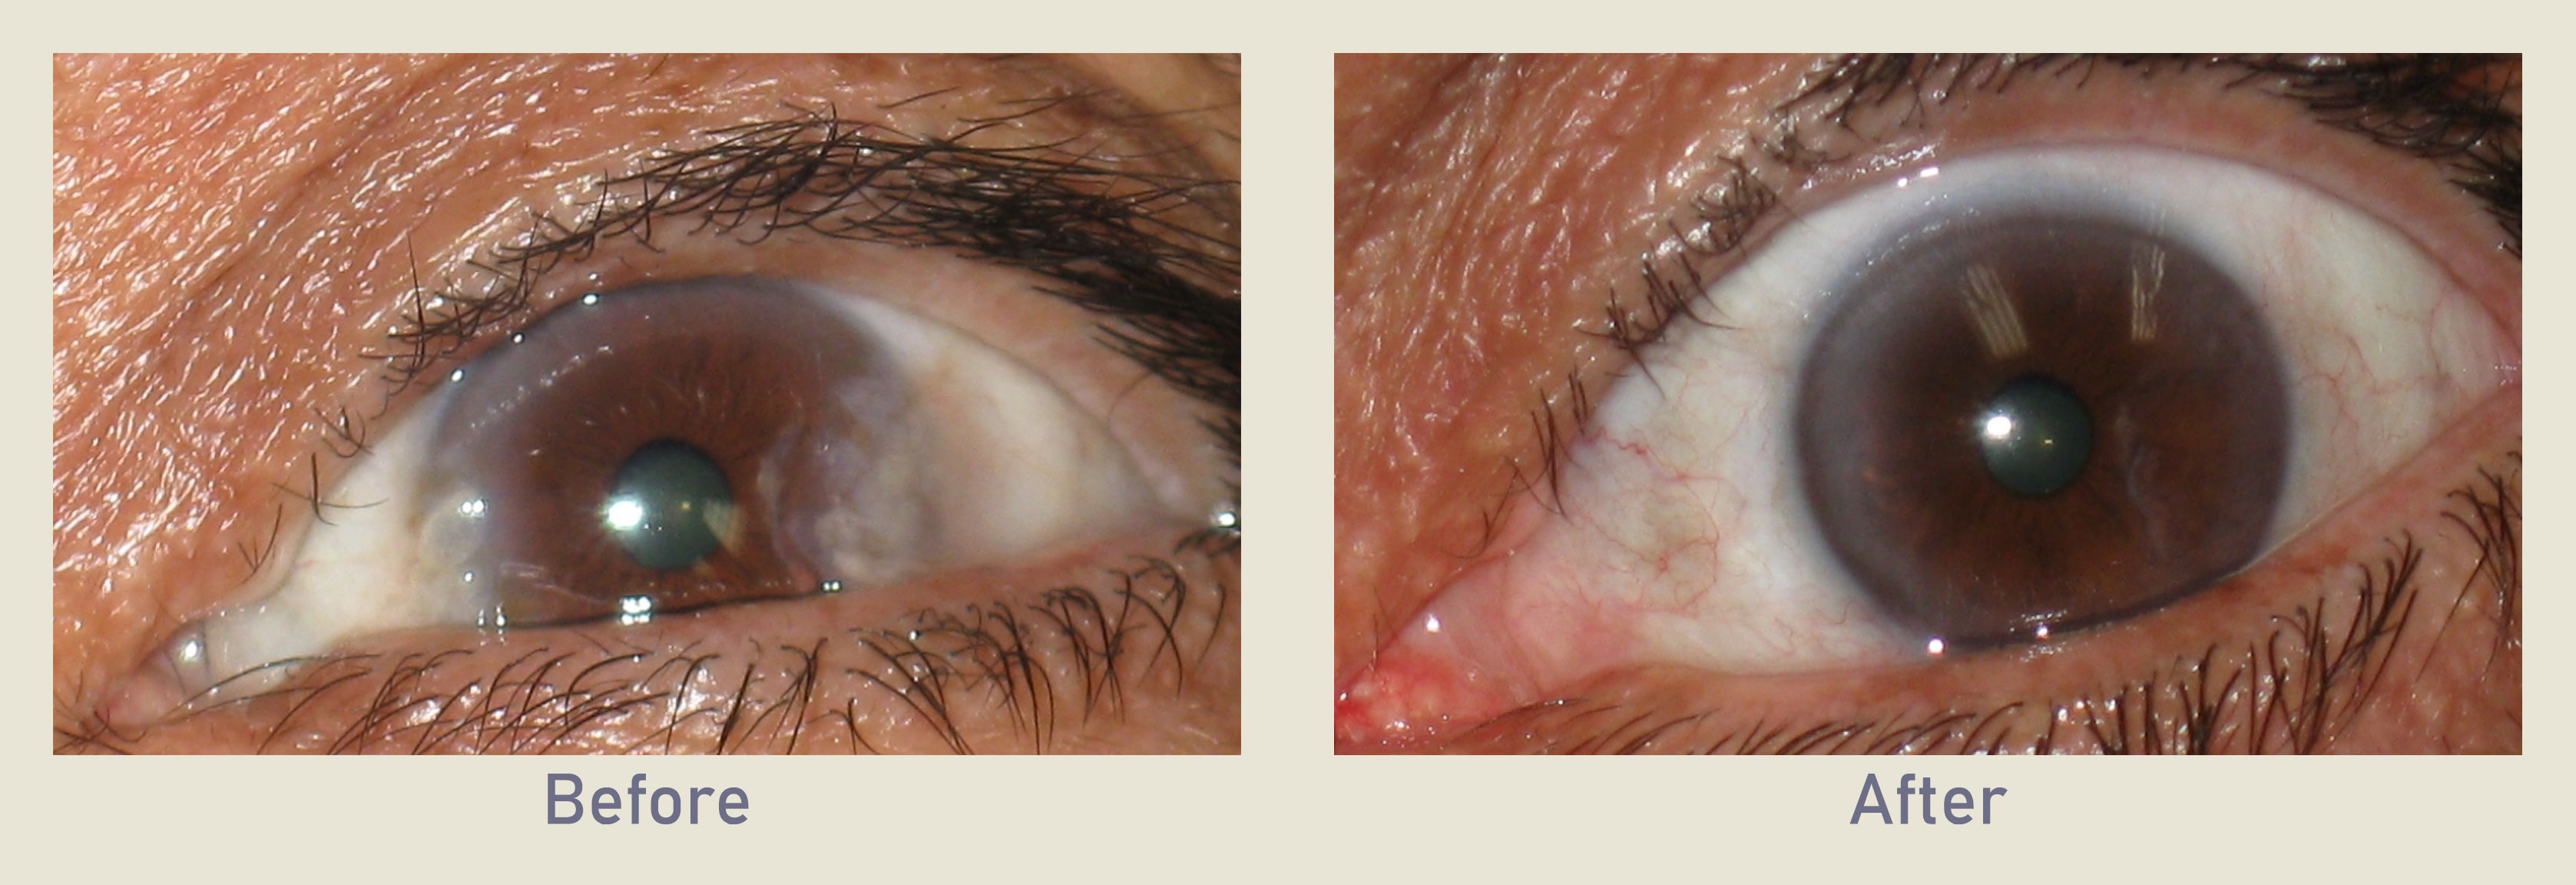 Pterygium Carnosidad Surfers Eye Before and After